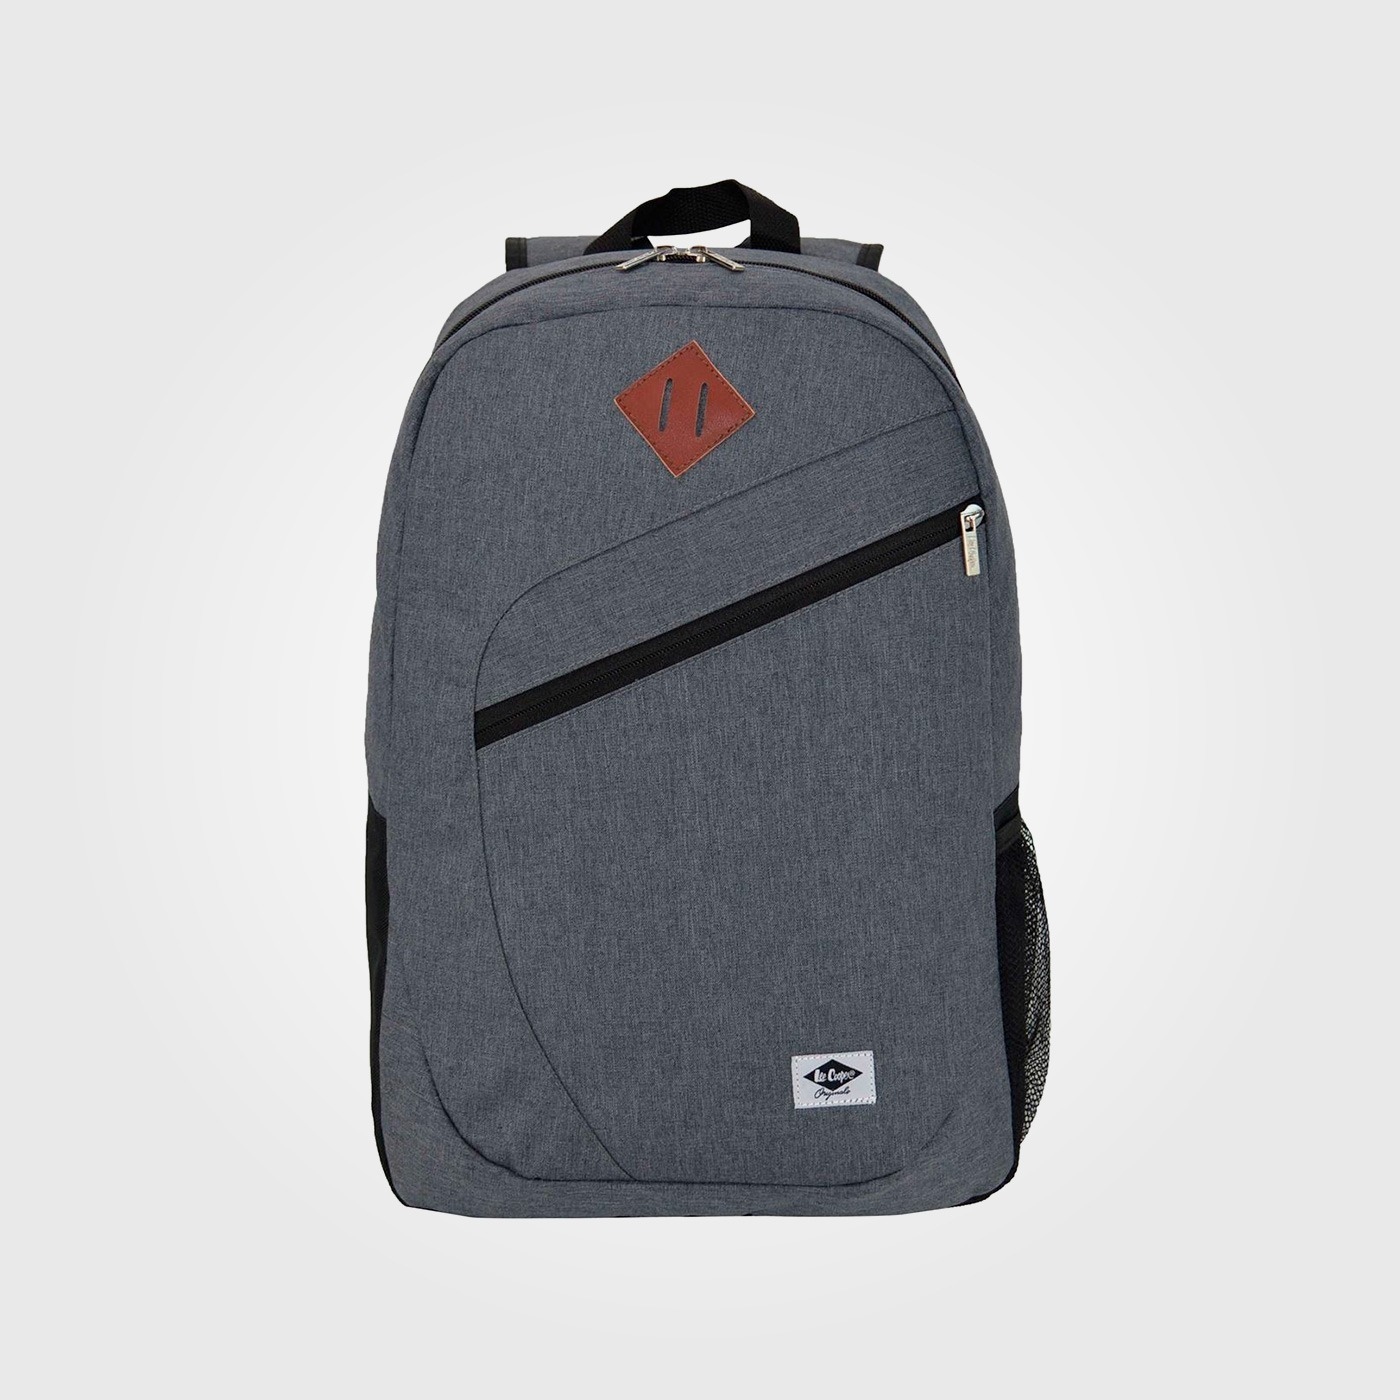 Рюкзак Lee Cooper Marl Grey